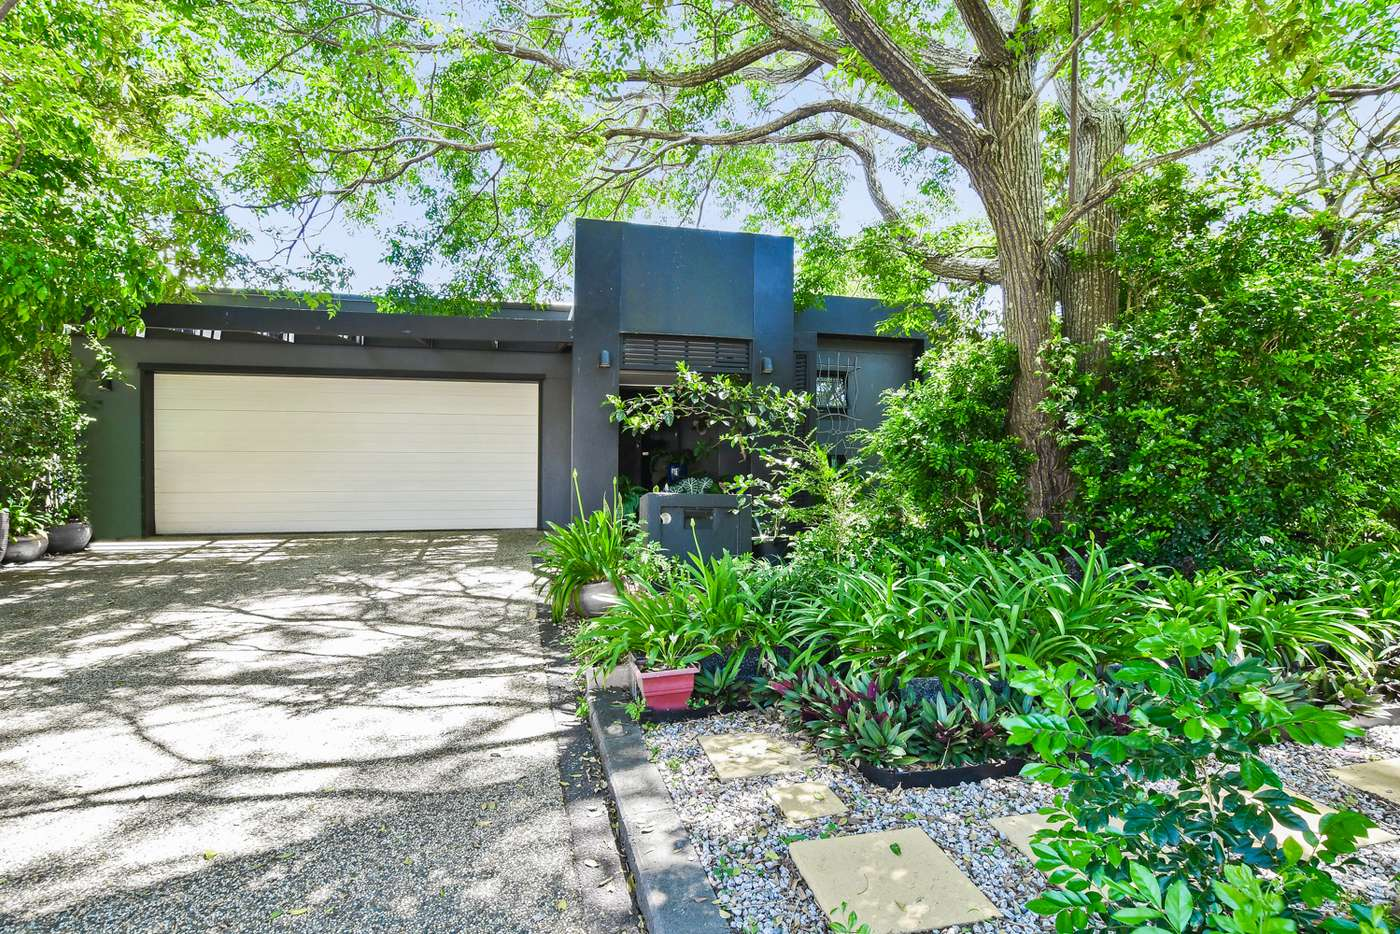 Main view of Homely house listing, 5 Wisteria Place, Currimundi QLD 4551